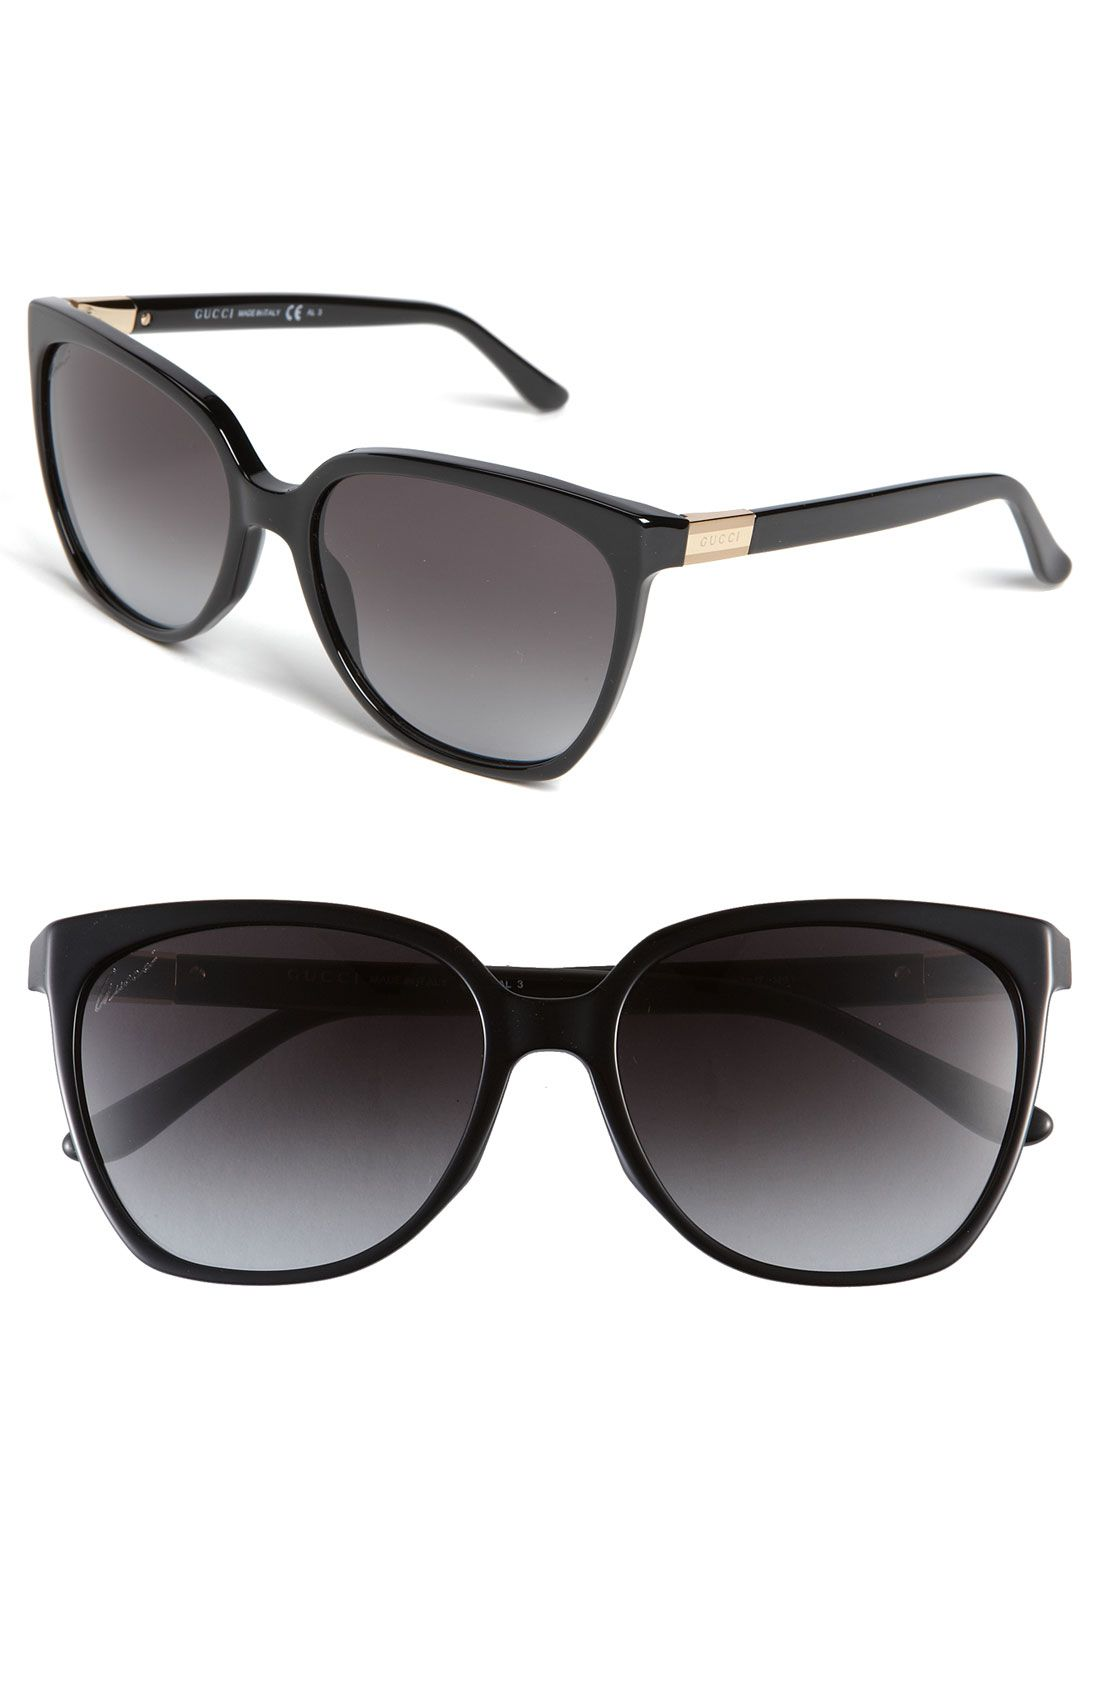 0939df6f0026e Gucci 57mm Oversized Sunglasses - black OR havana  )